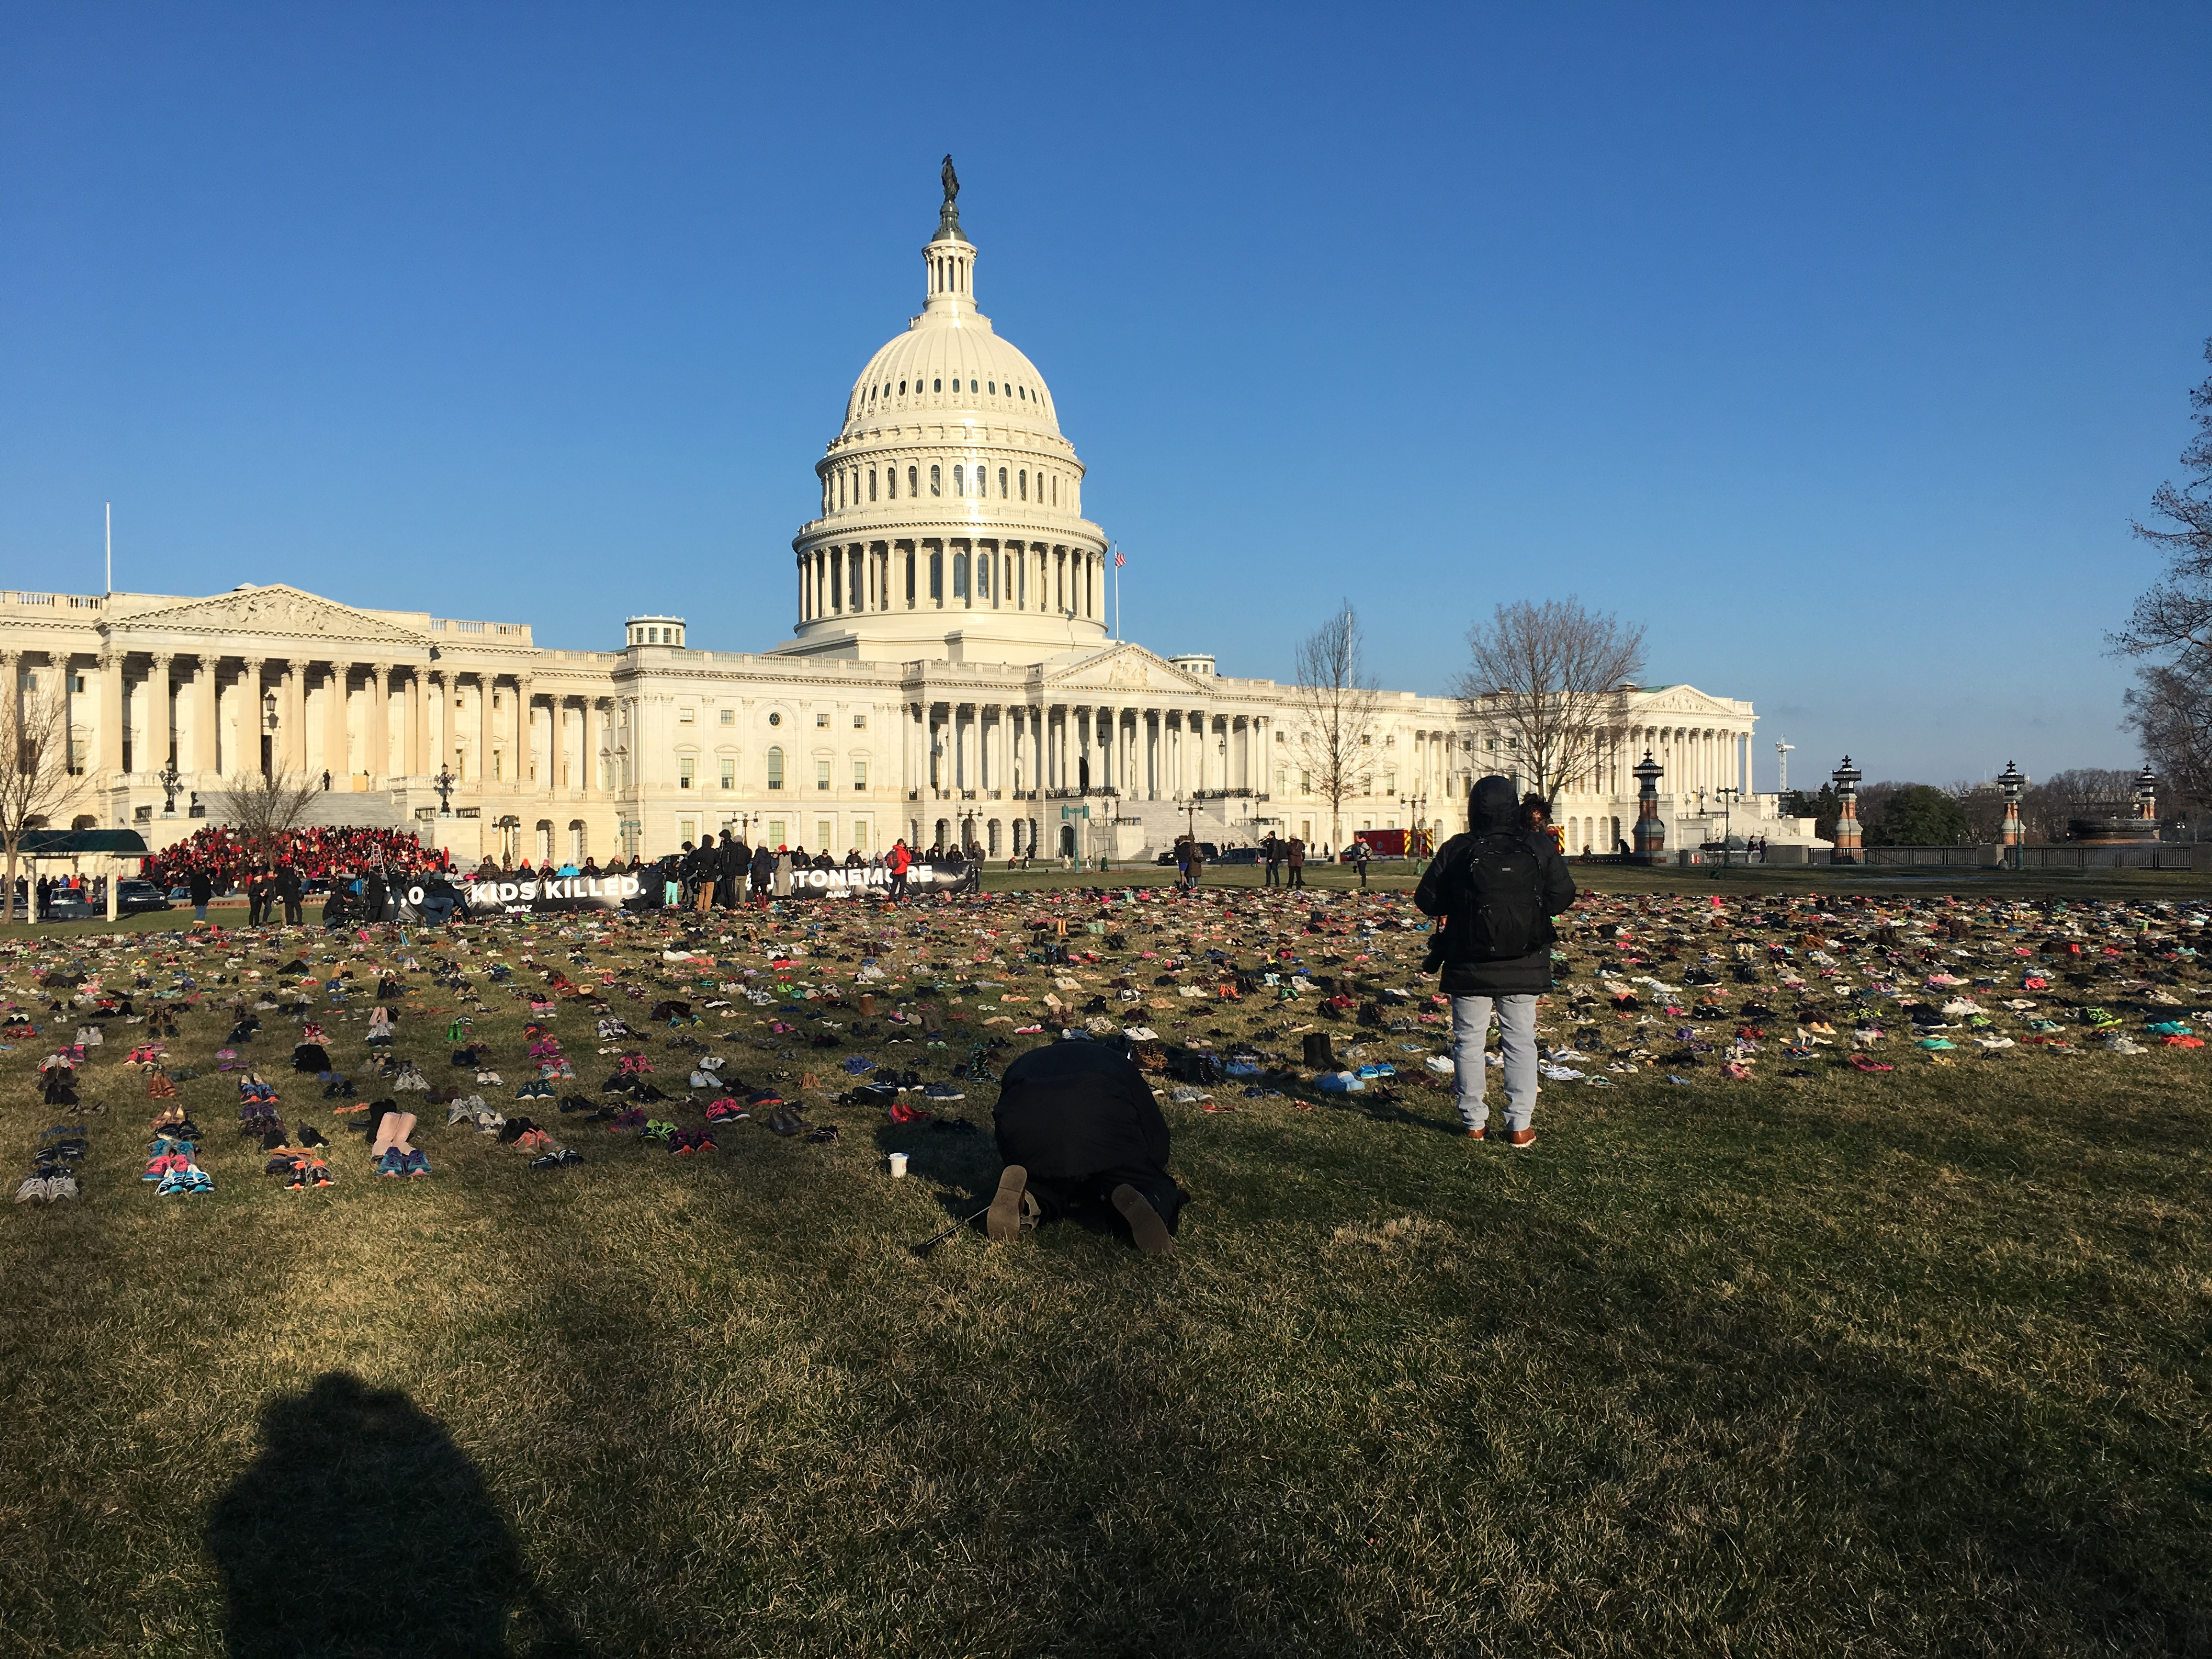 7000 pairs of children's shoes at the US Capitol, 3/13/2018, in a display organized by the international advocacy organization Avaaz